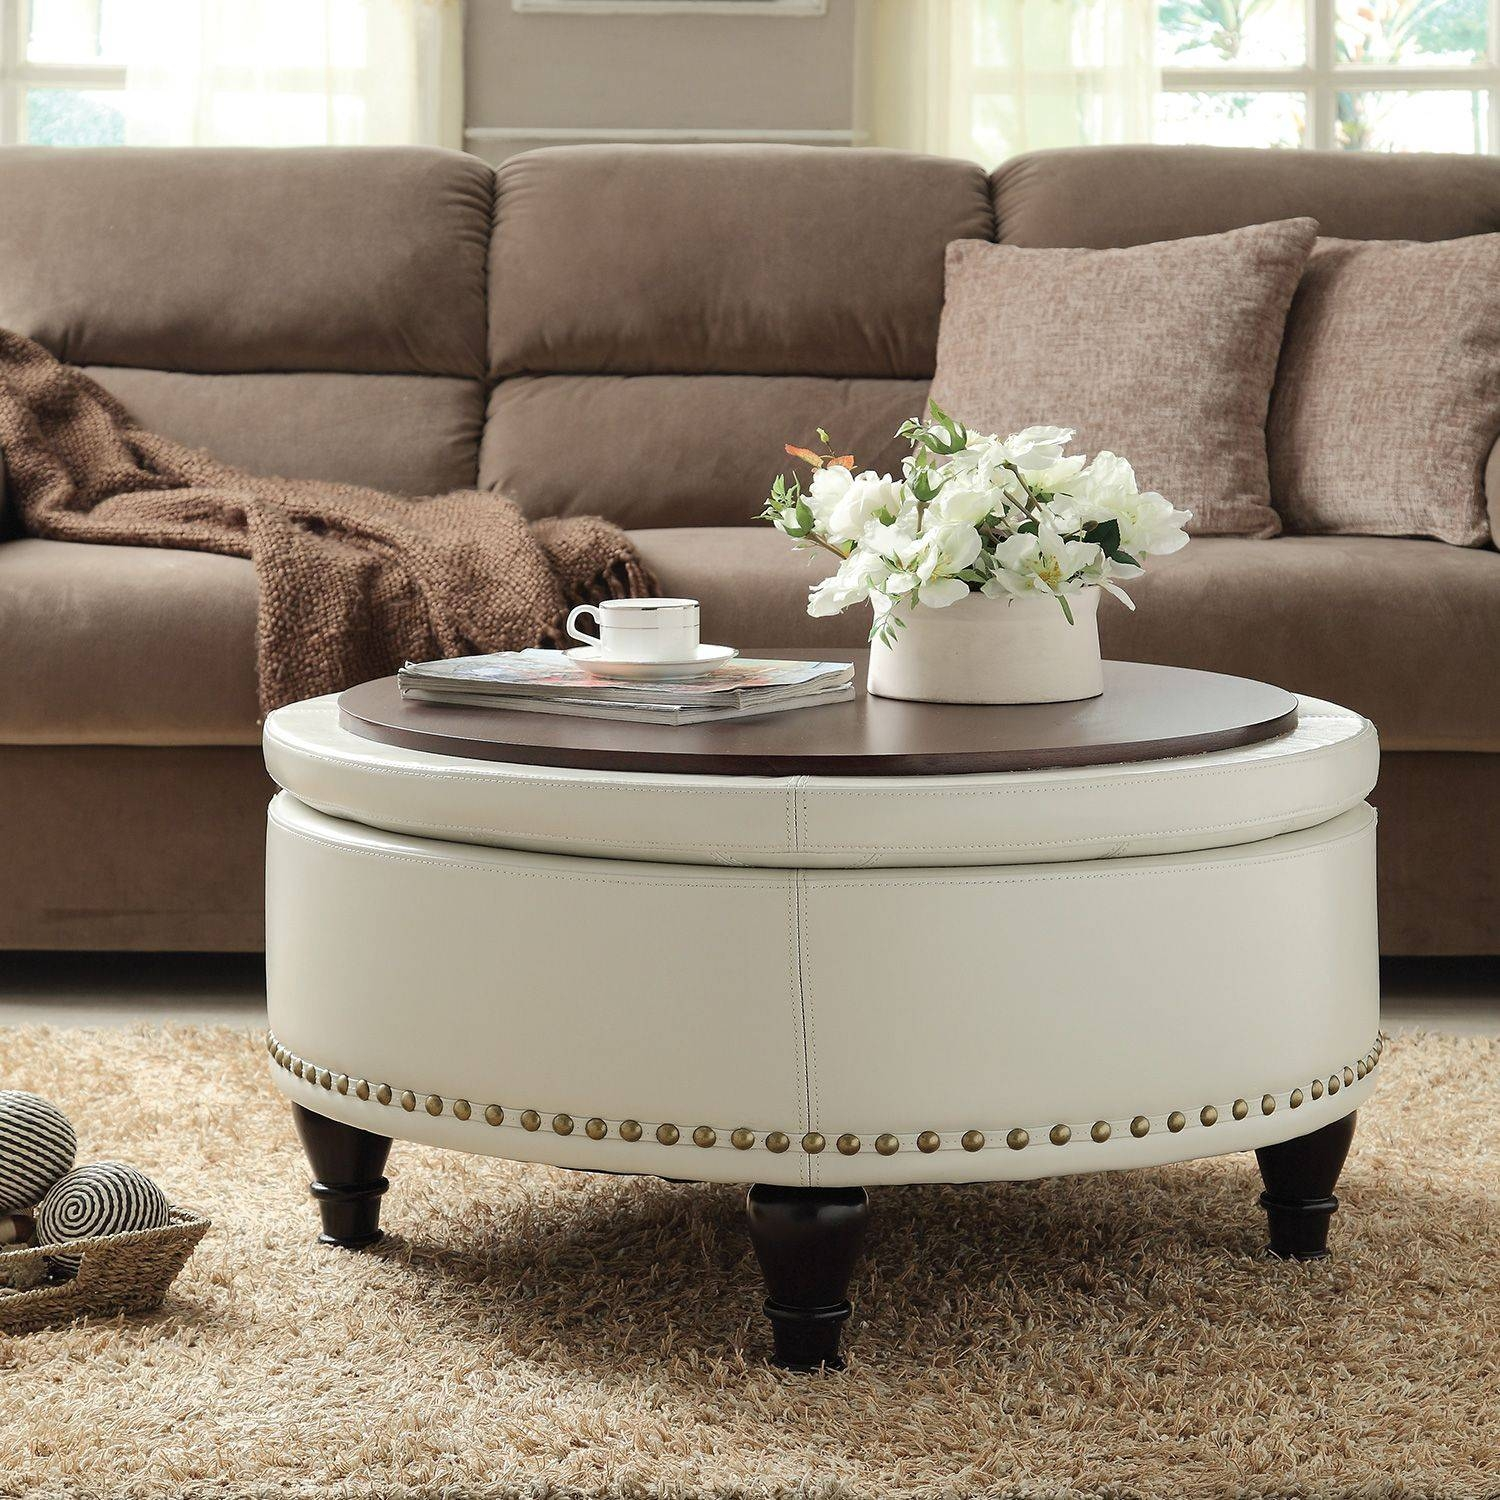 Living Room : Furniture Living Room Coffee Table With Wheels And intended for White And Brown Coffee Tables (Image 20 of 30)